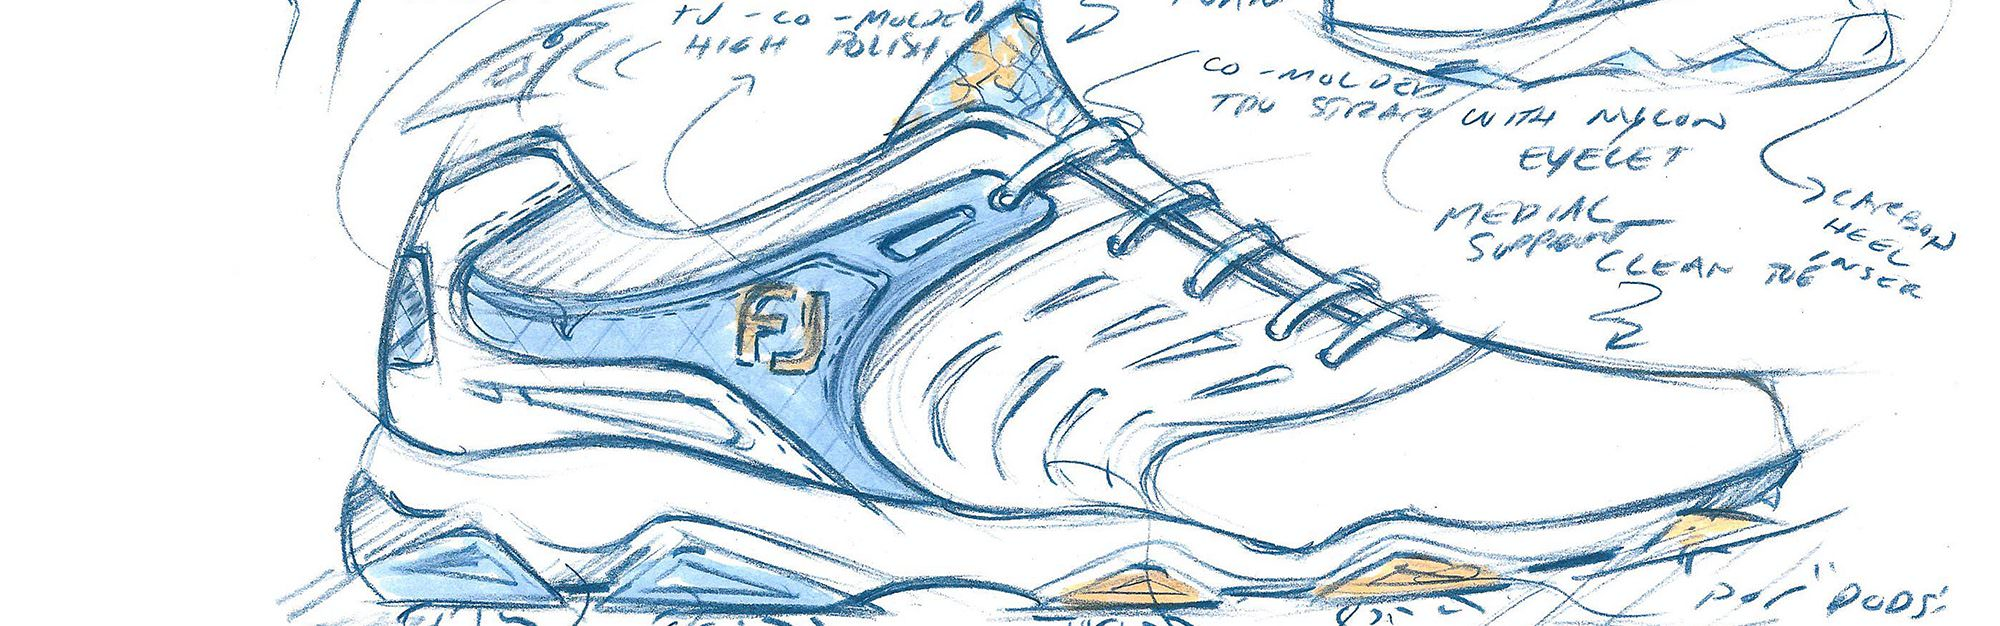 What's involved in the design process for golf shoes? The answer may surprise you